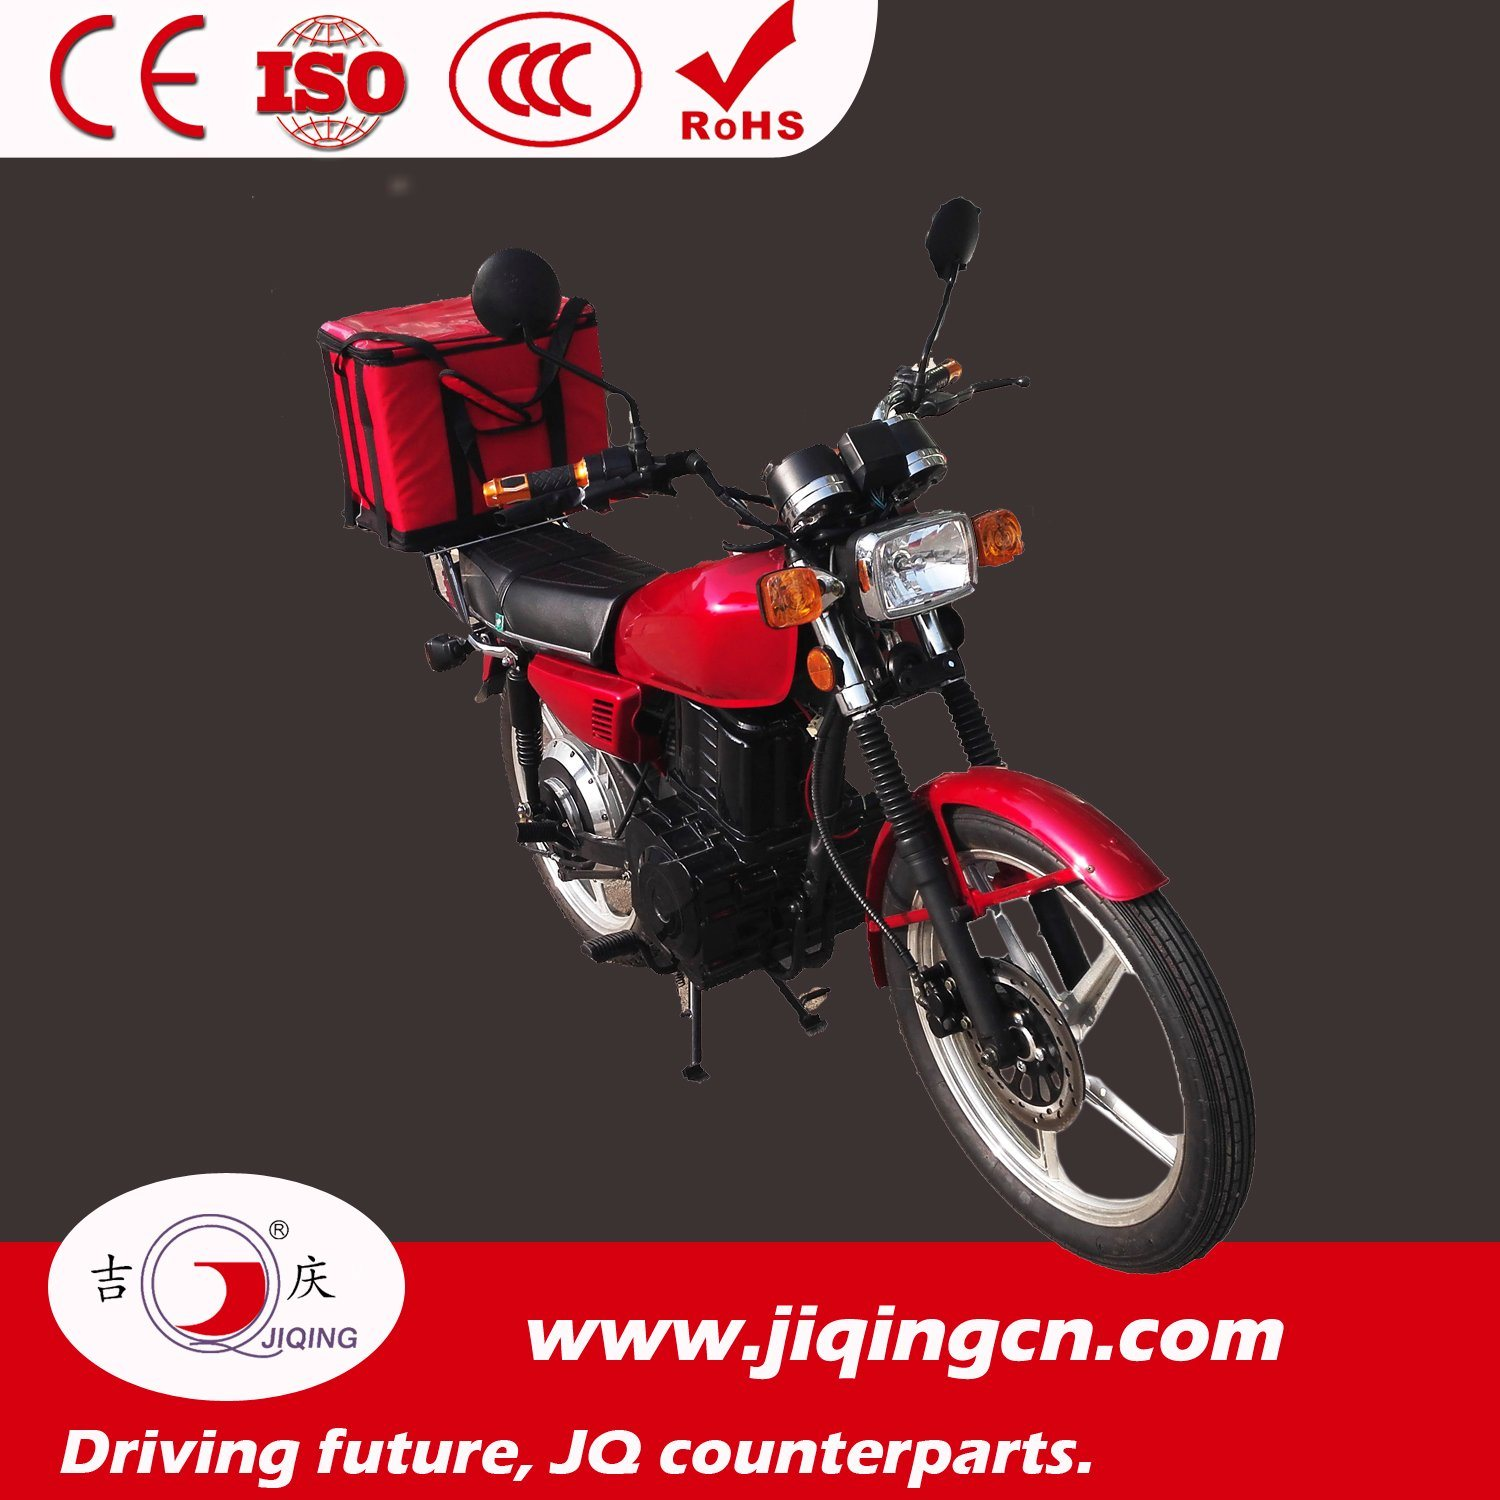 2000W-3000W Electric Motorcycle, Electric Bike (Juguar) -Slope Climbing Ebike